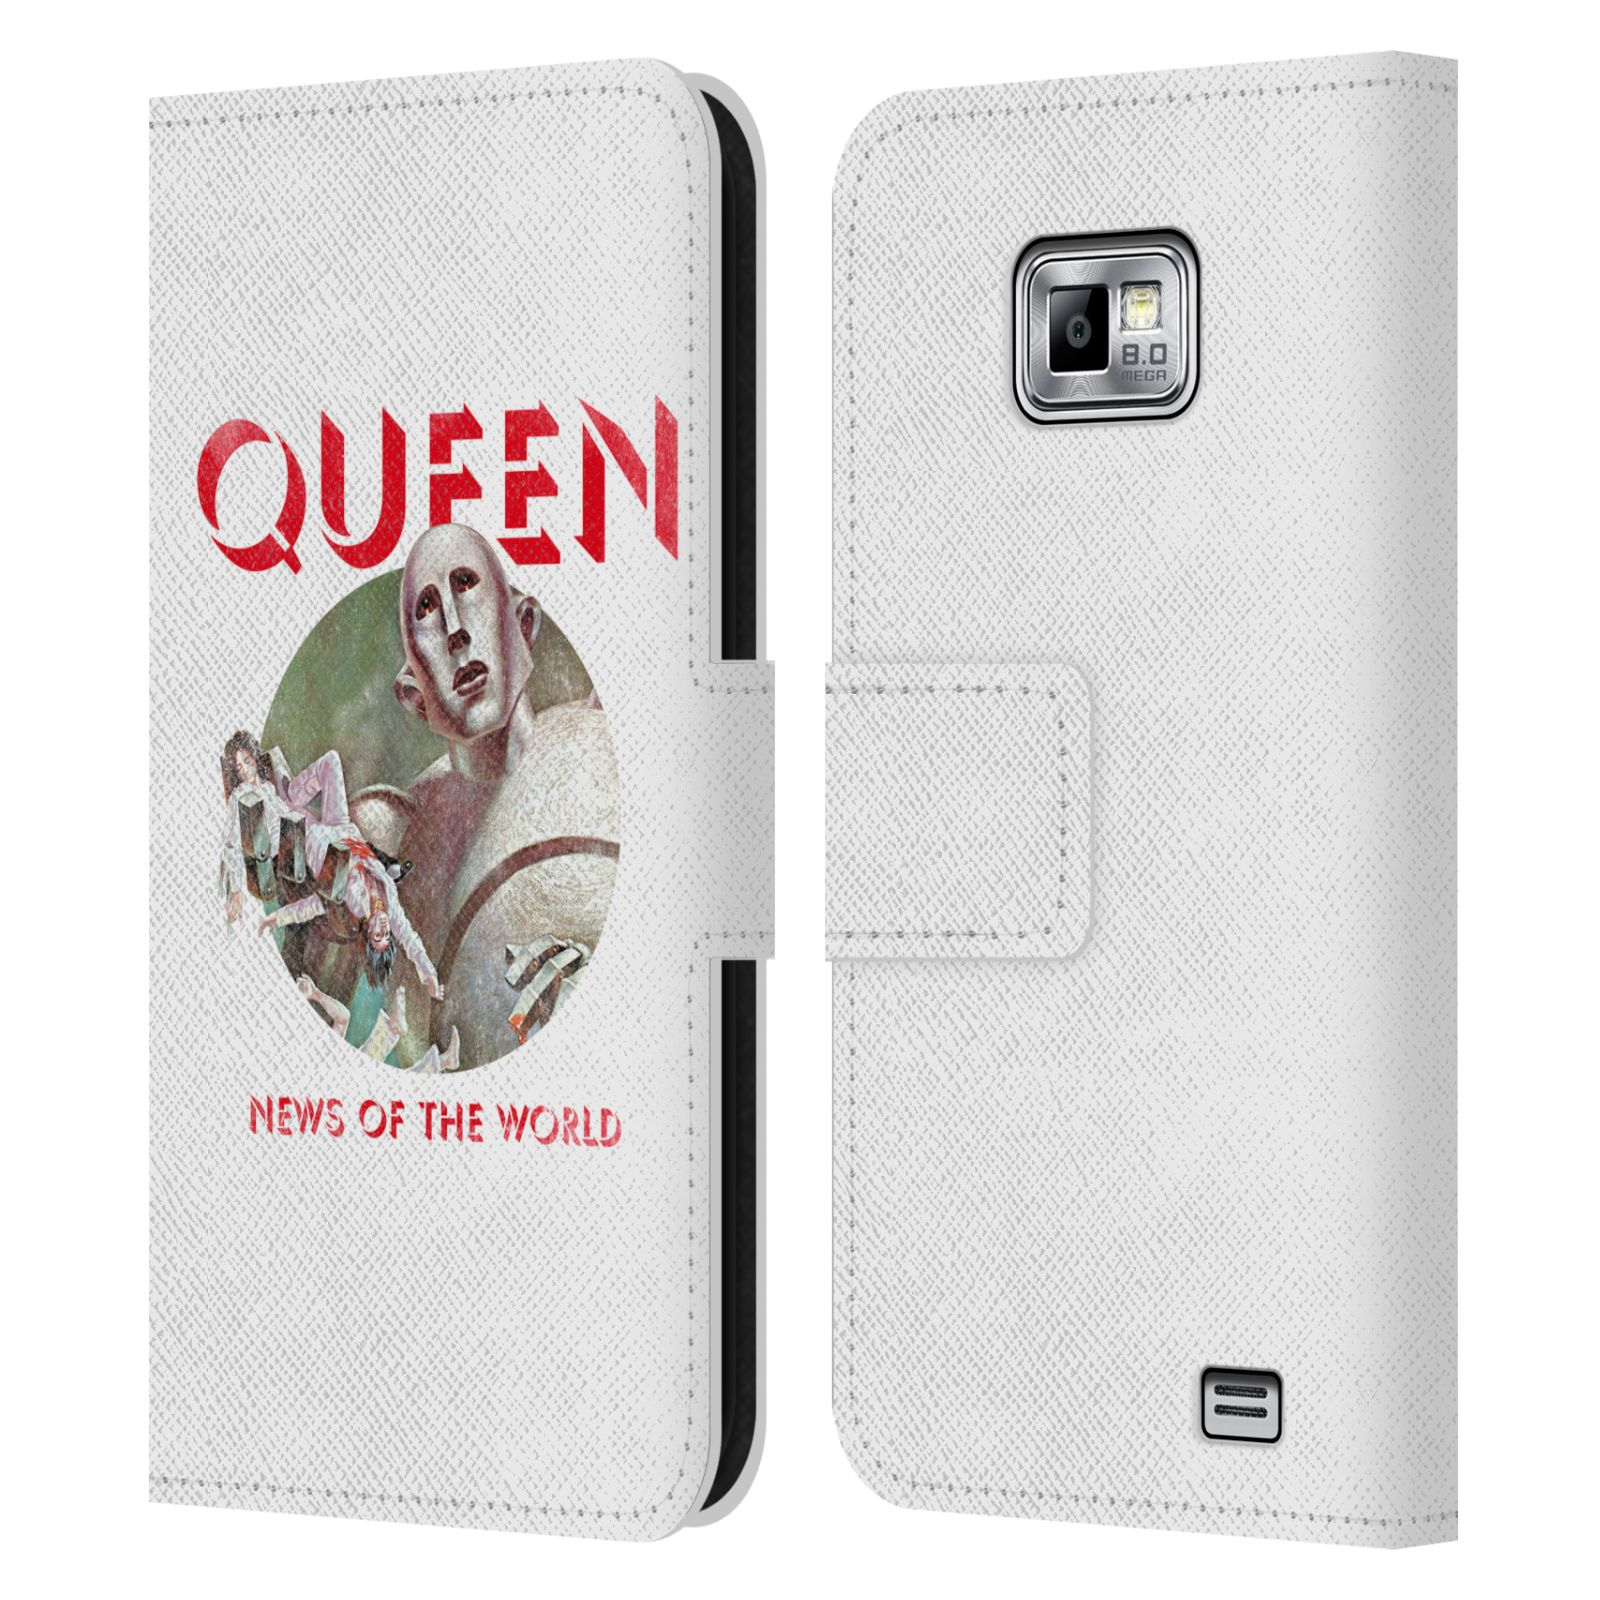 ... -QUEEN-KEY-ART-LEATHER-BOOK-WALLET-CASE-COVER-FOR-SAMSUNG-PHONES-2